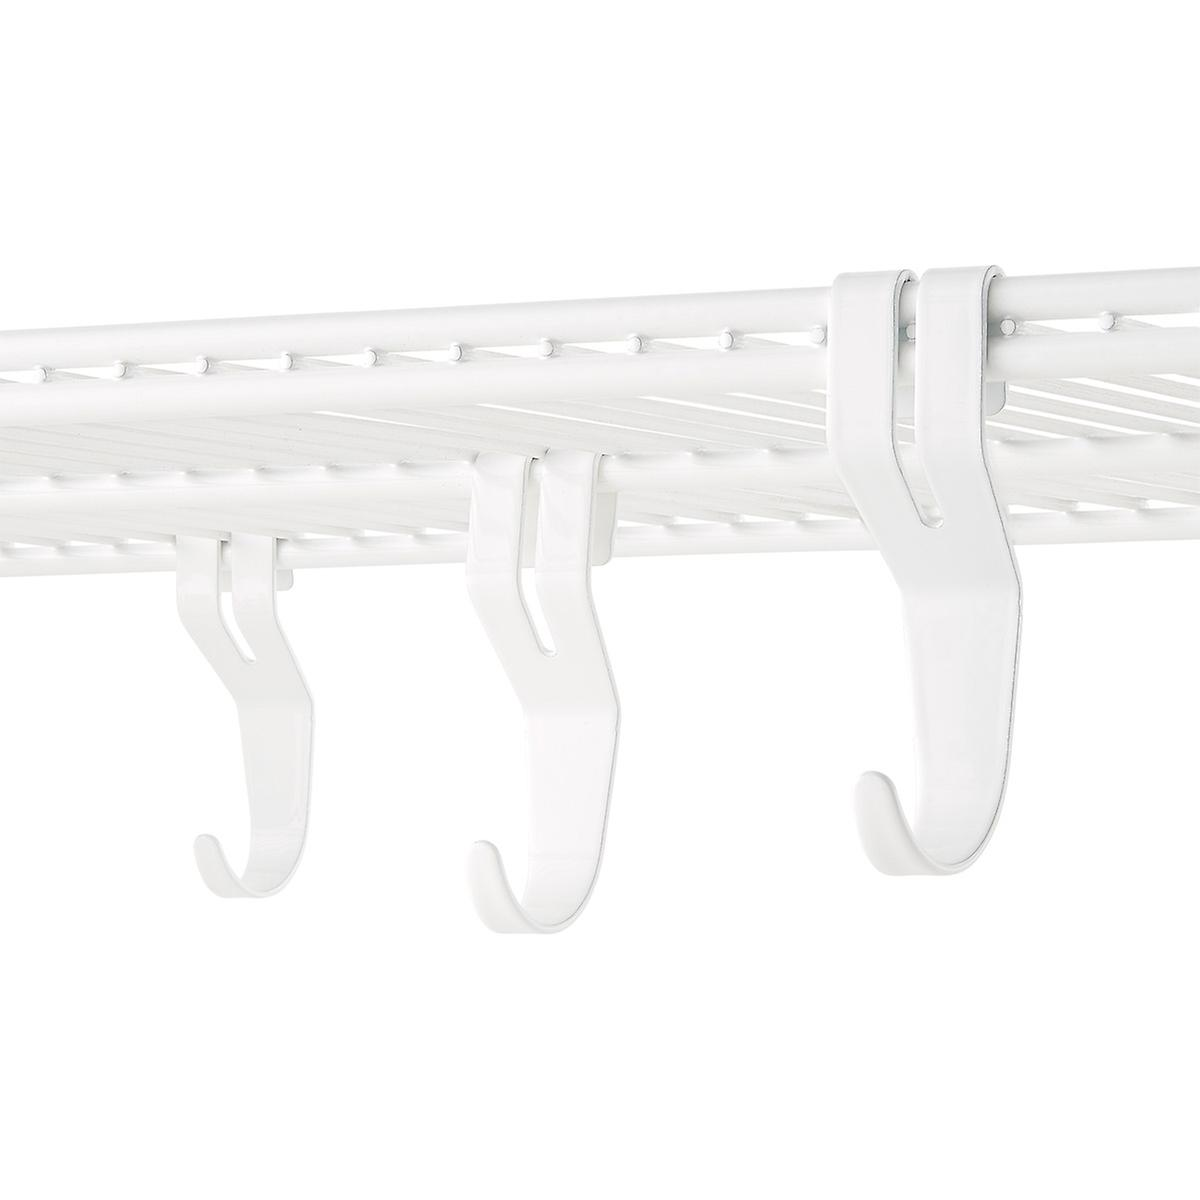 White elfa Shelf Hooks